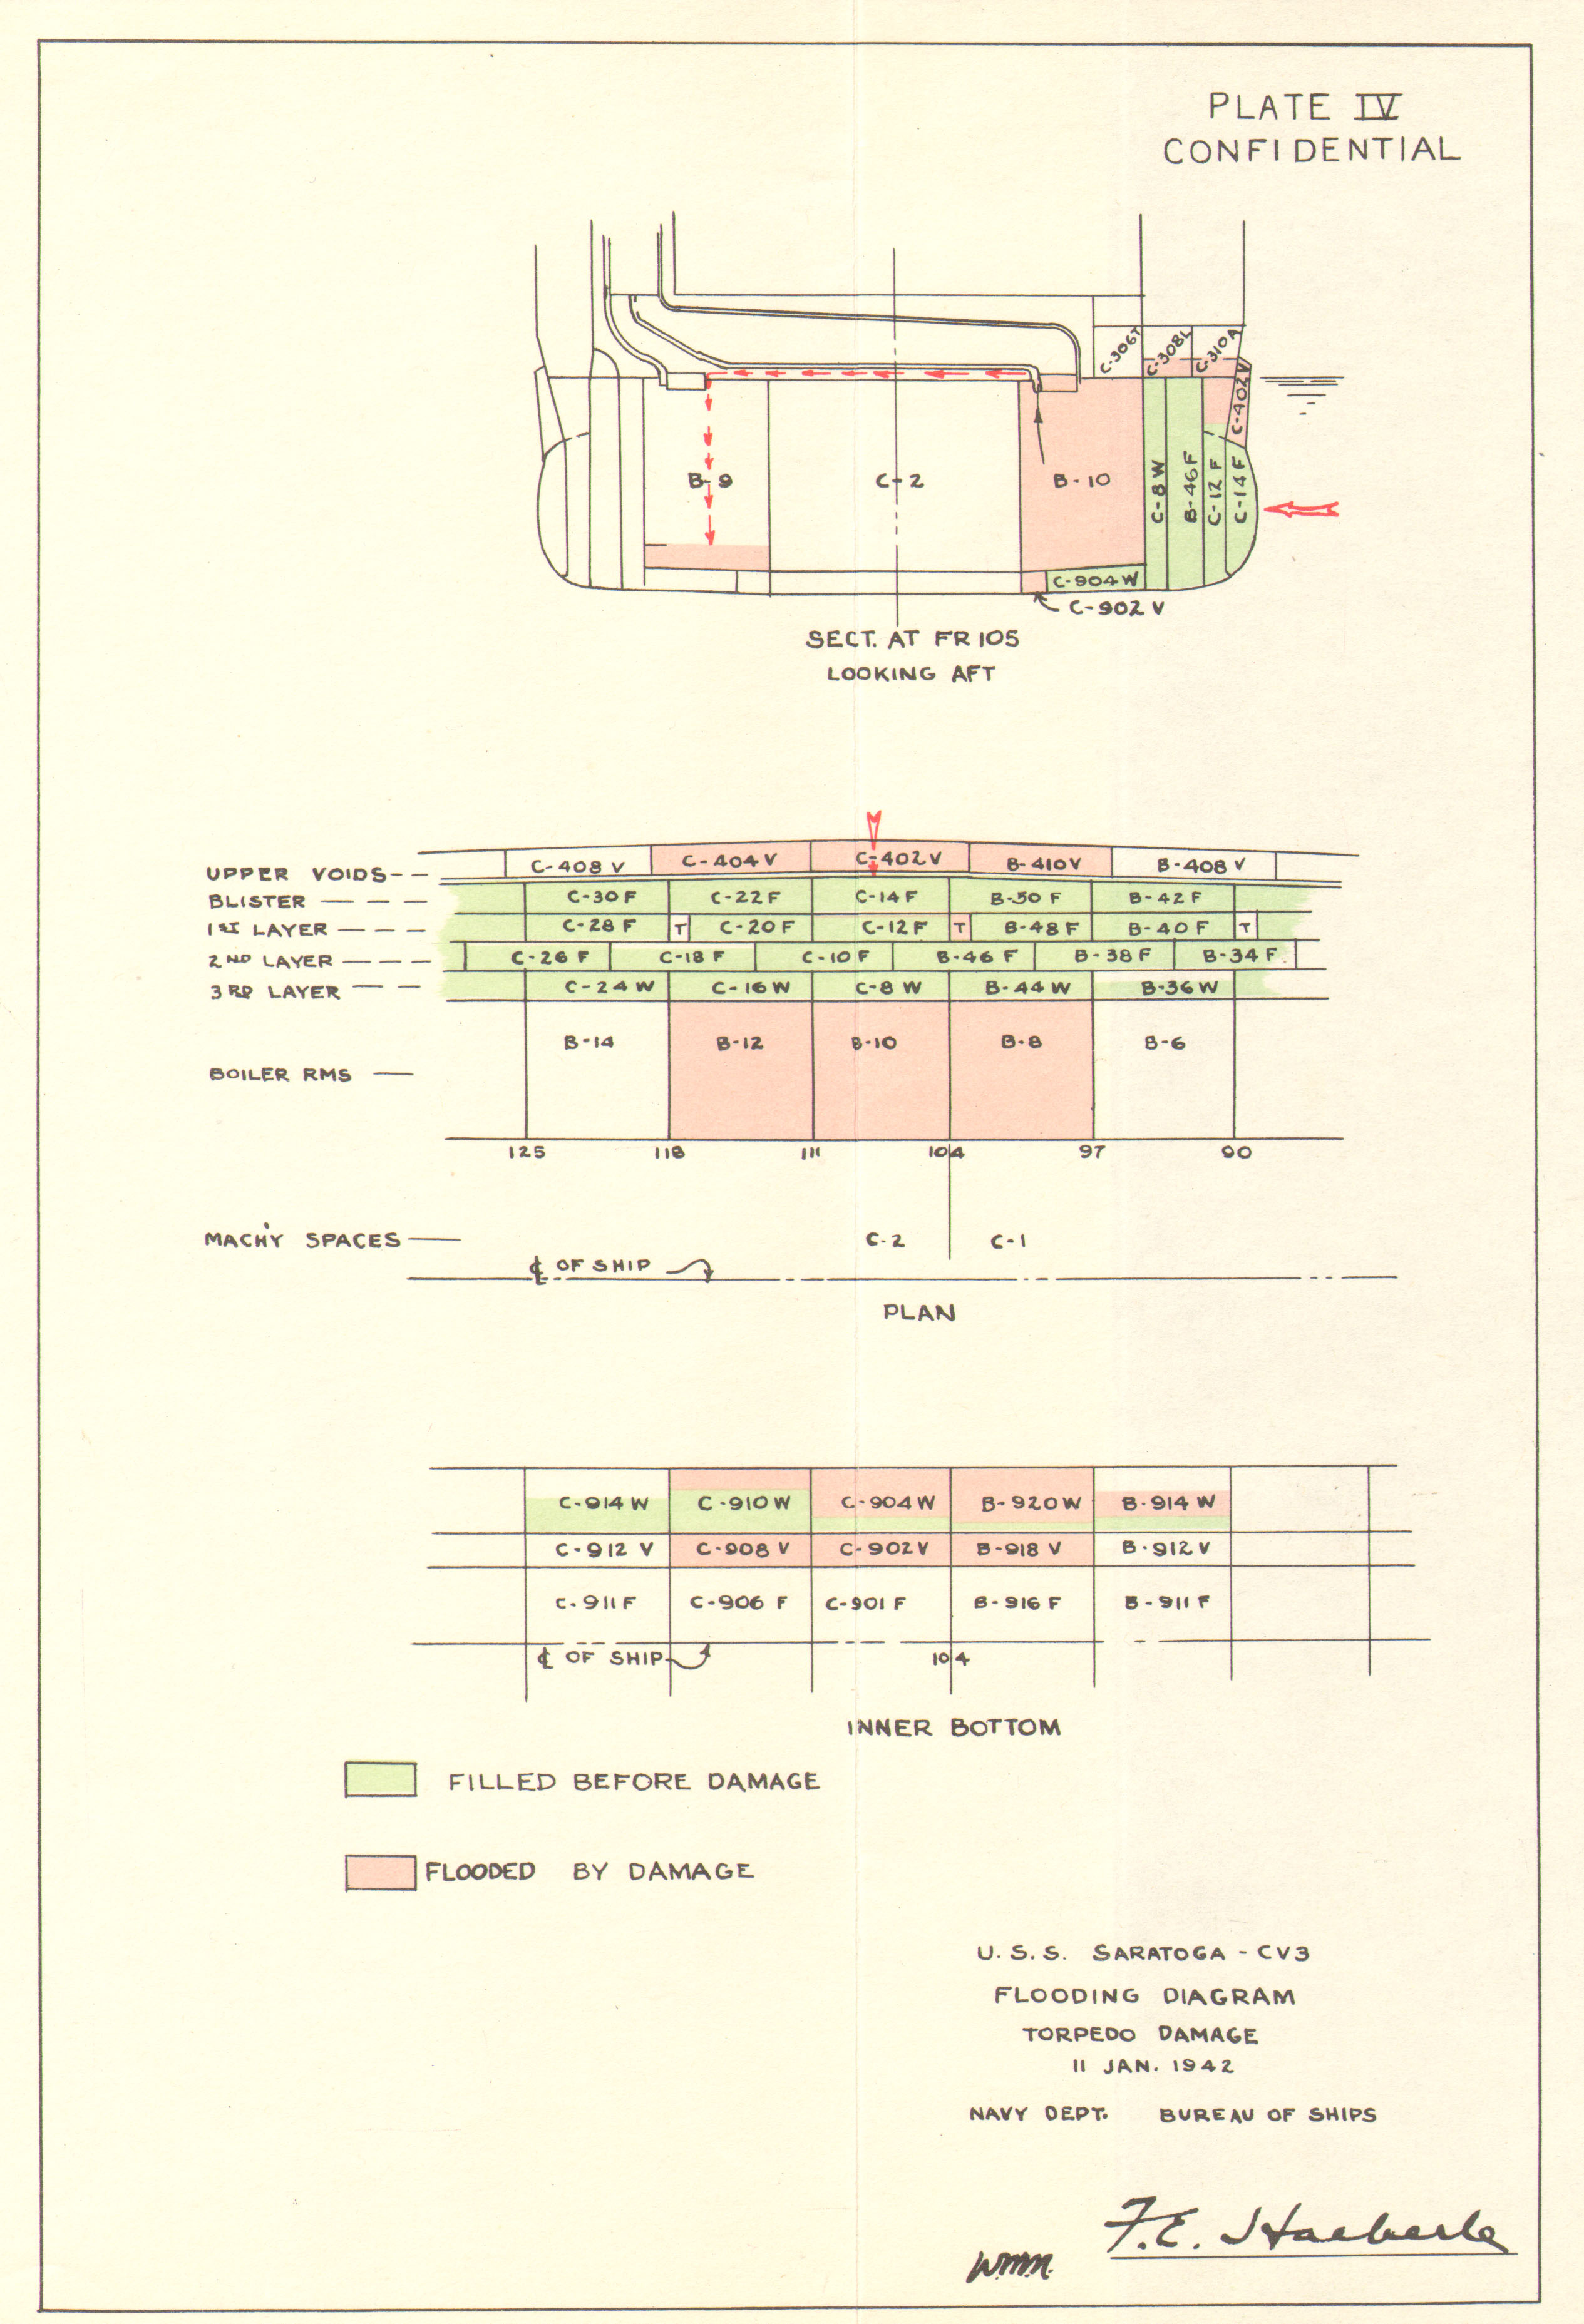 Uss Saratoga Cv3 Torpedo Damage 11 January 1942 Final Report Piping Diagram Ship Plate V Arrangement Of Fuel Oil Transfer